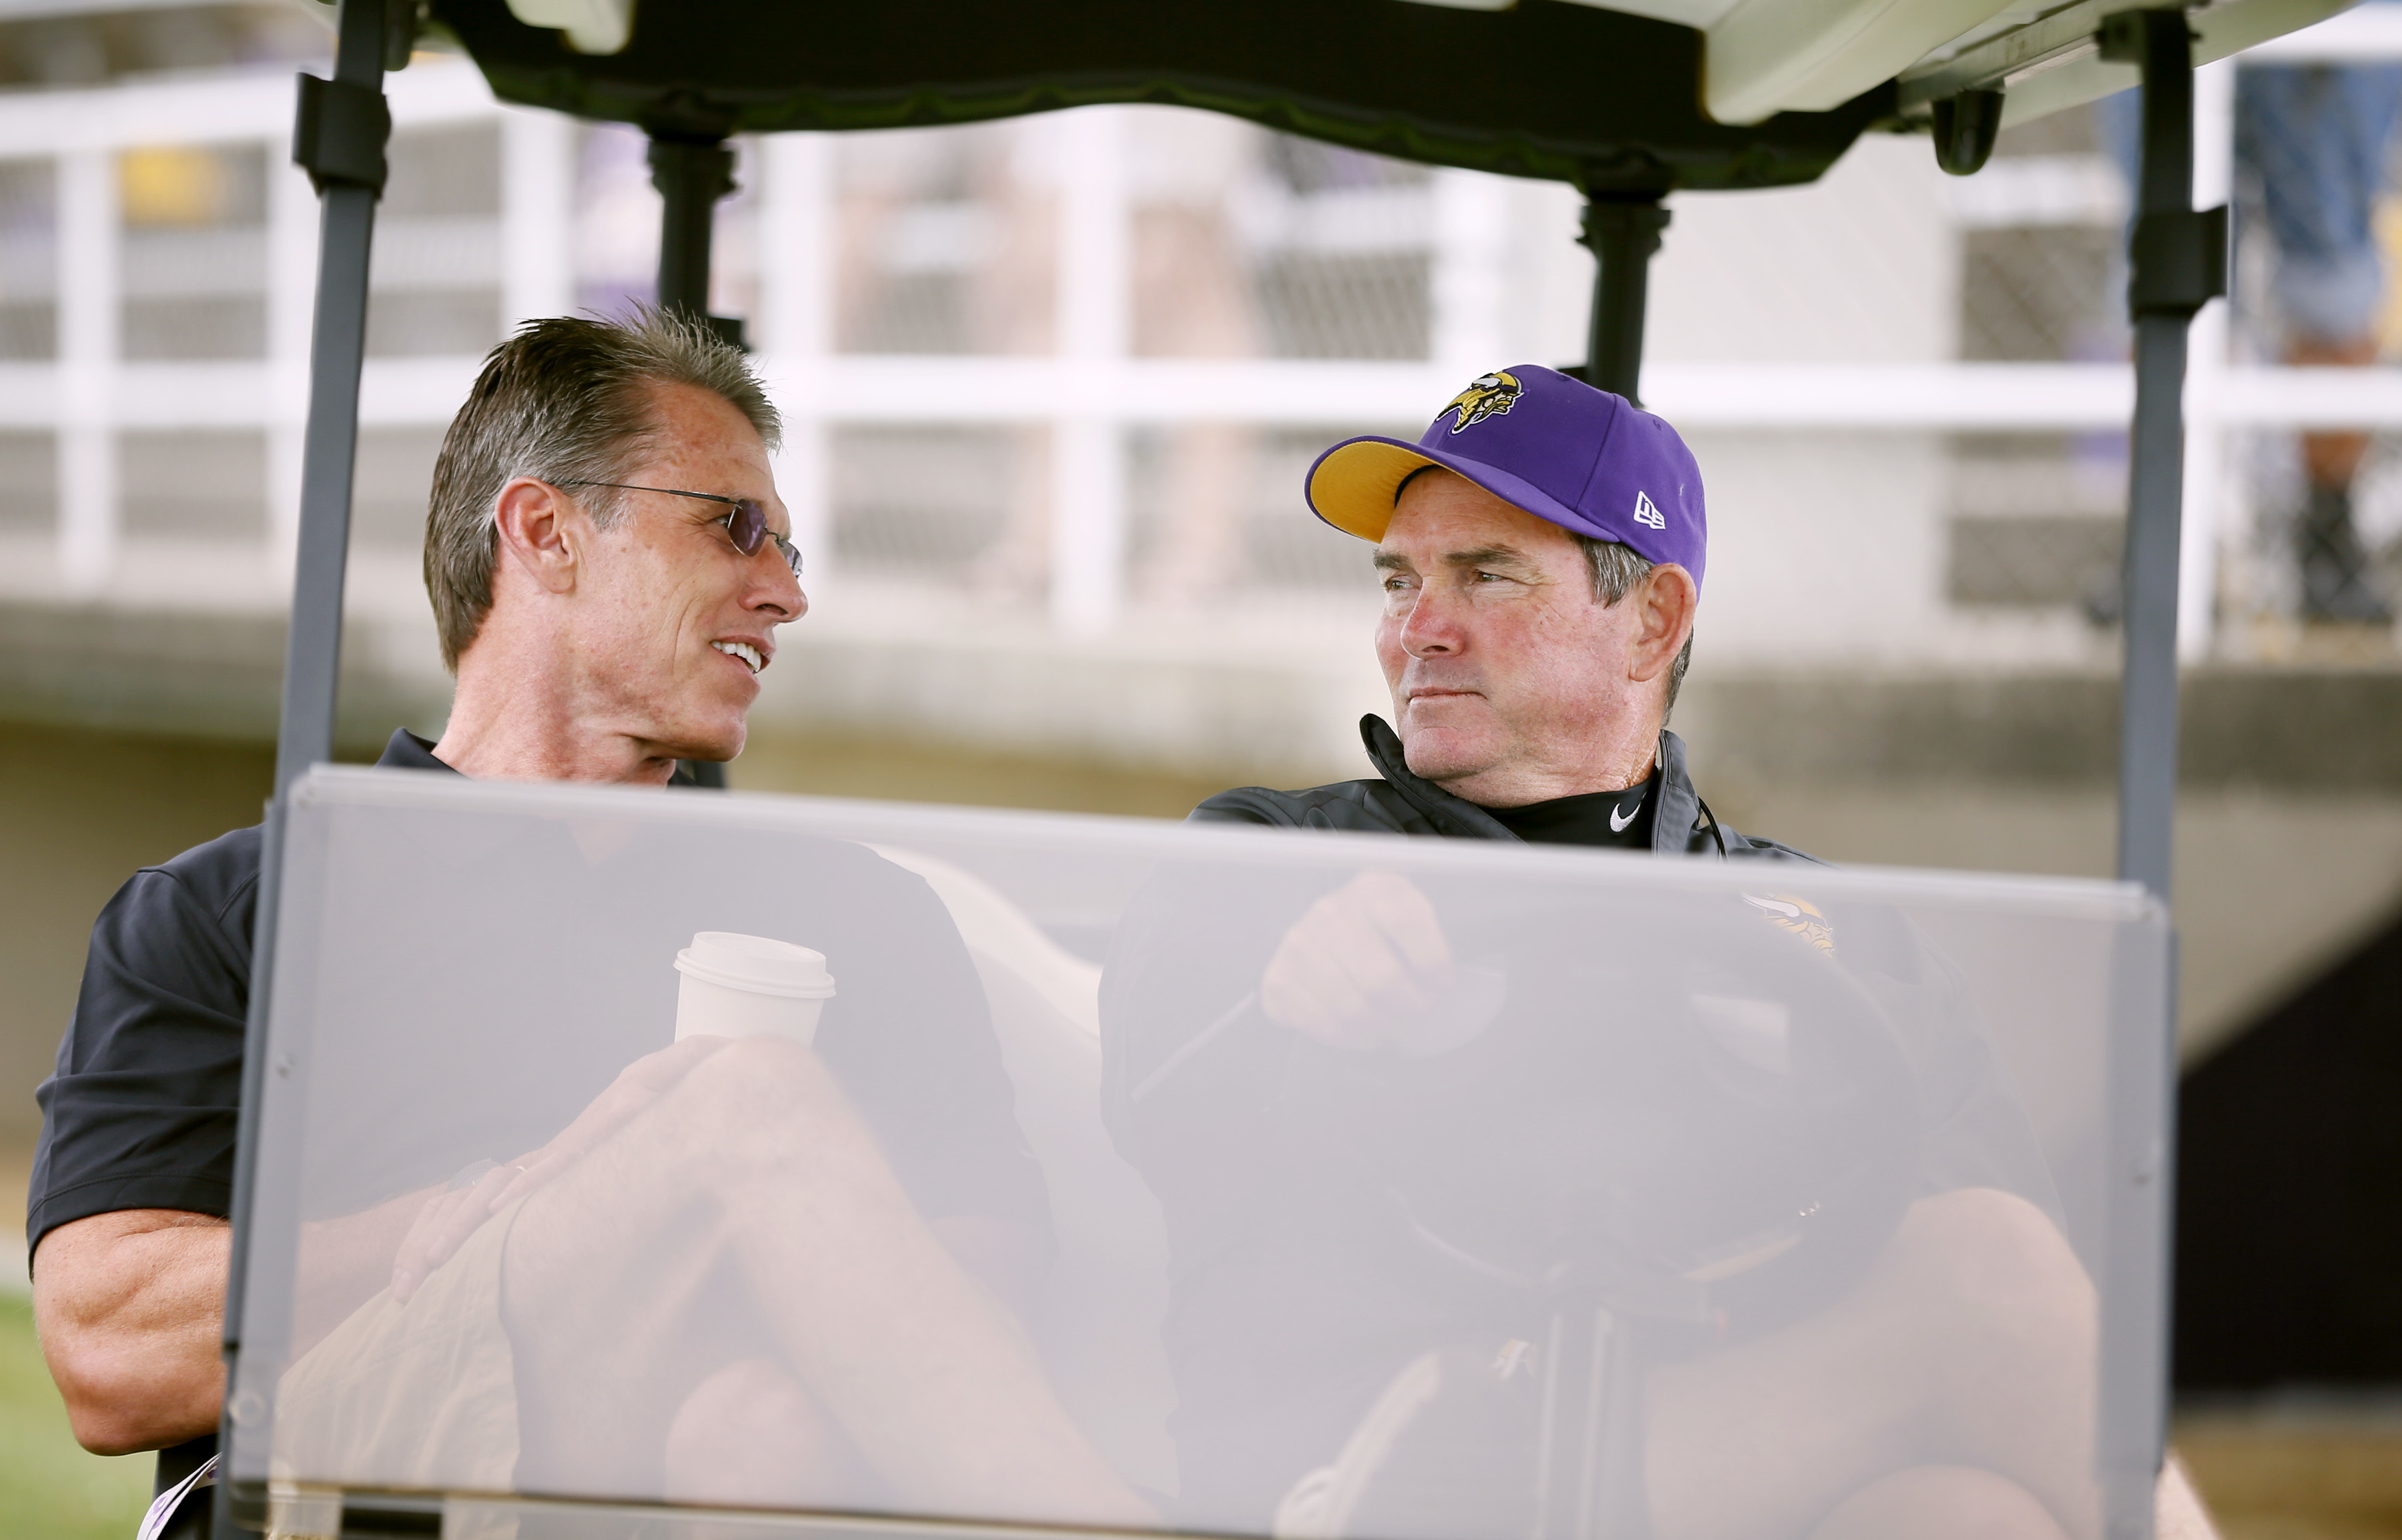 Vikings GM Rick Spielman left talked with head coach Mike Zimmer during NFL camp at Minnesota State University , Mankato Monday July 28, 2014 in Mankato, MN . ] Jerry Holt Jerry.holt@startribune.com